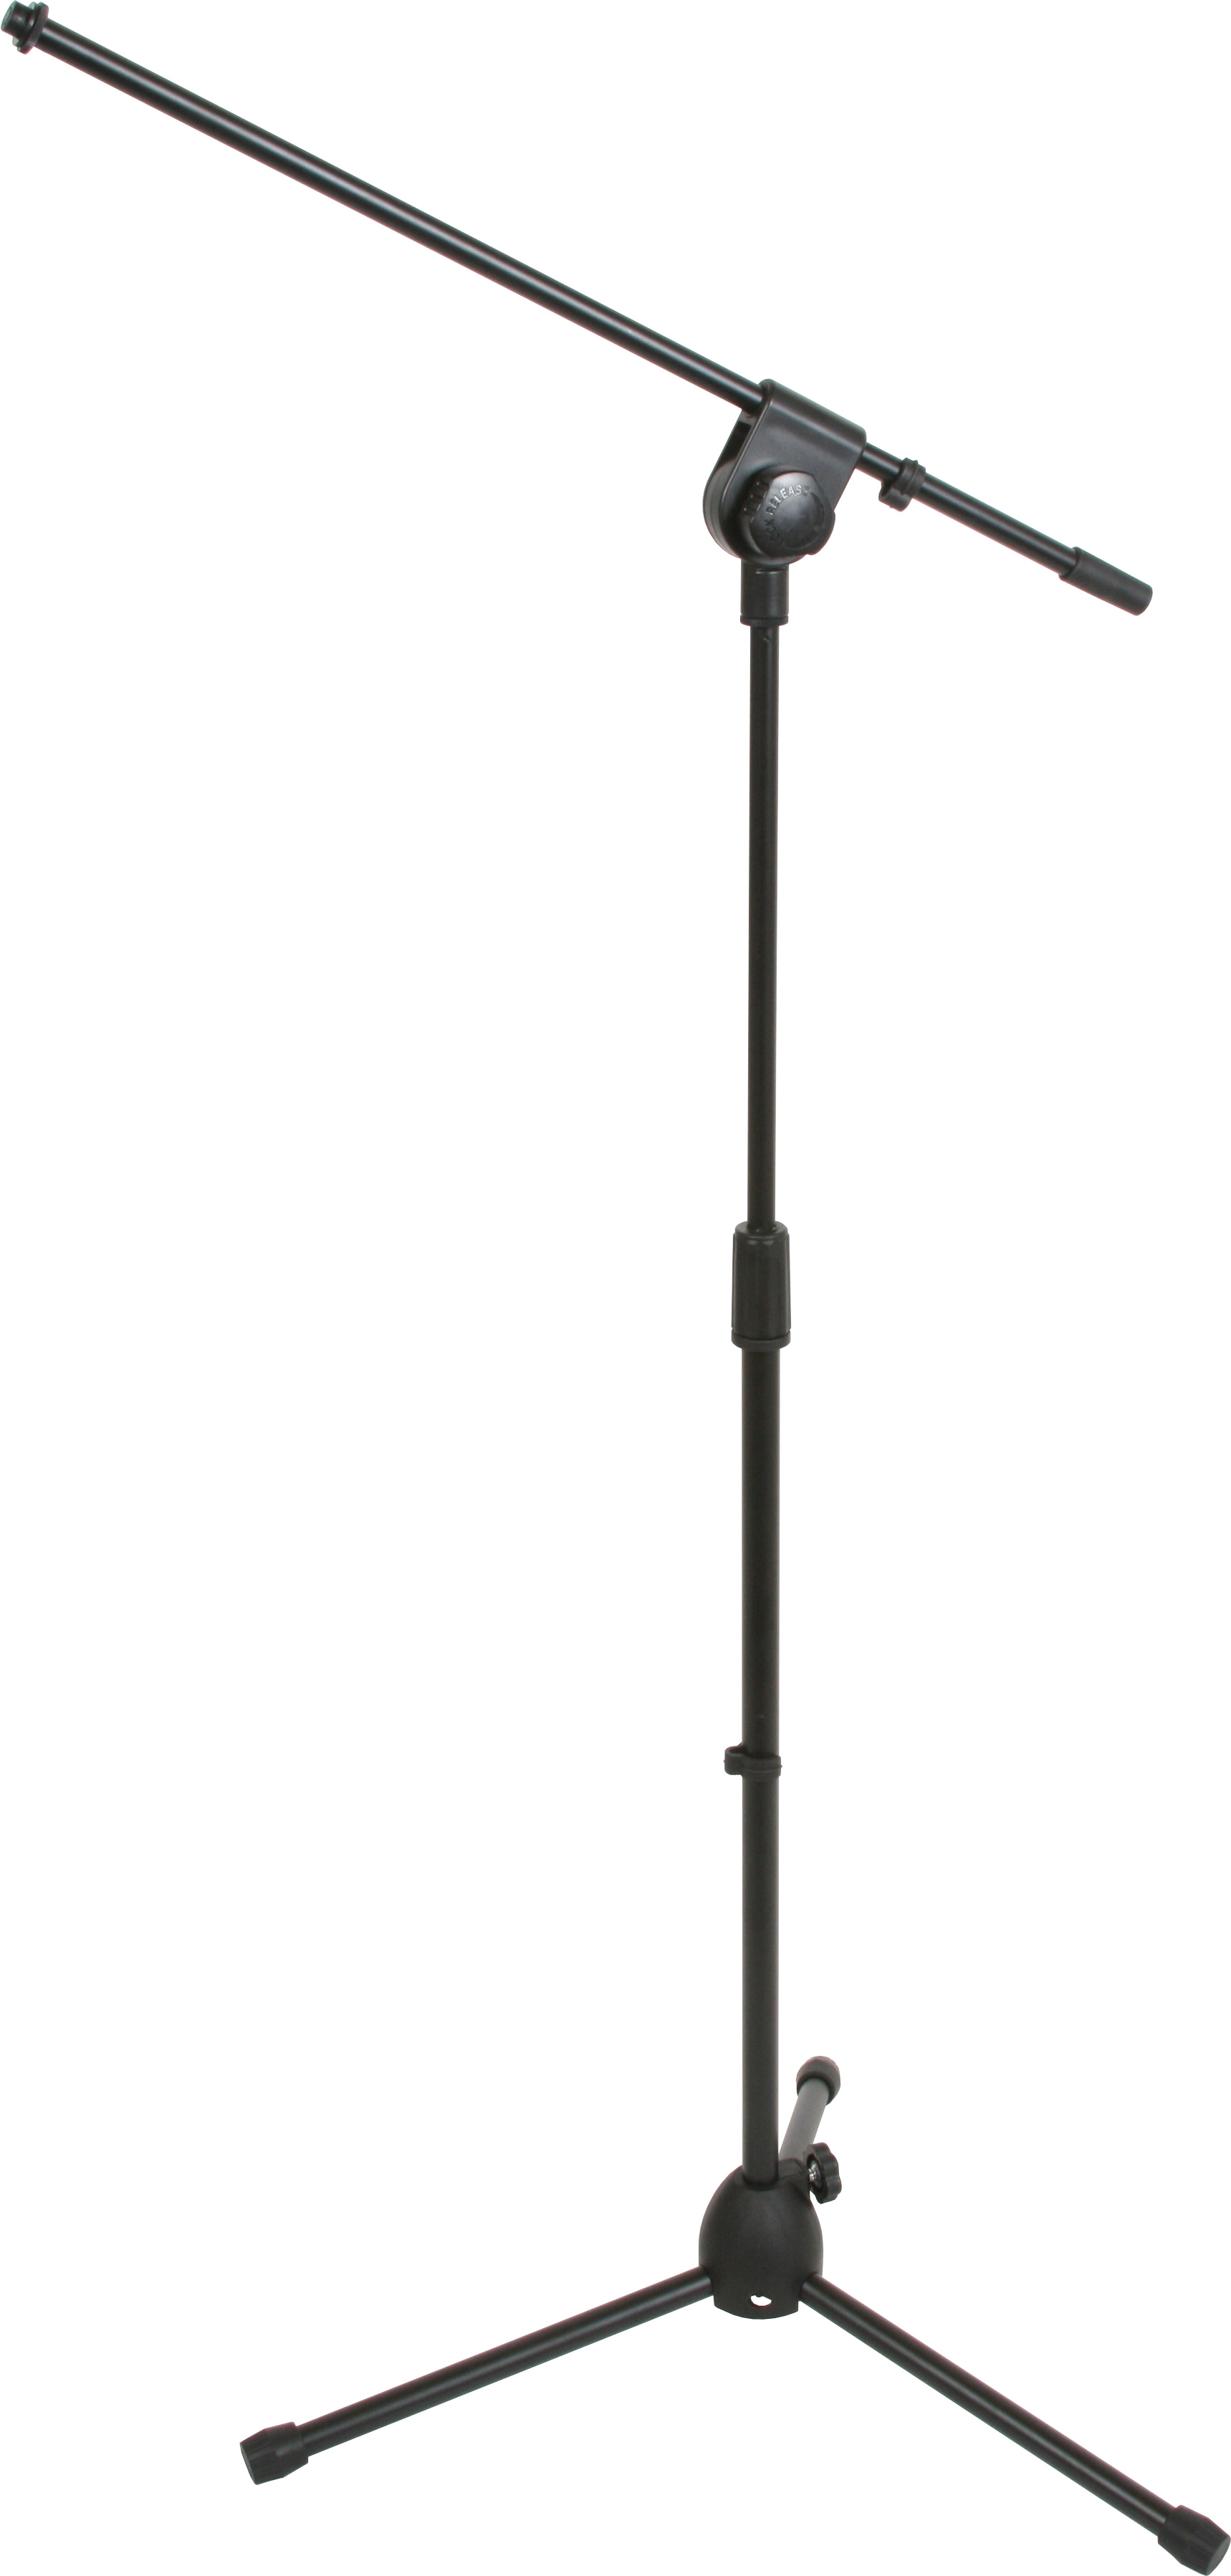 Galaxy Audio Mst 18 Mic Stand